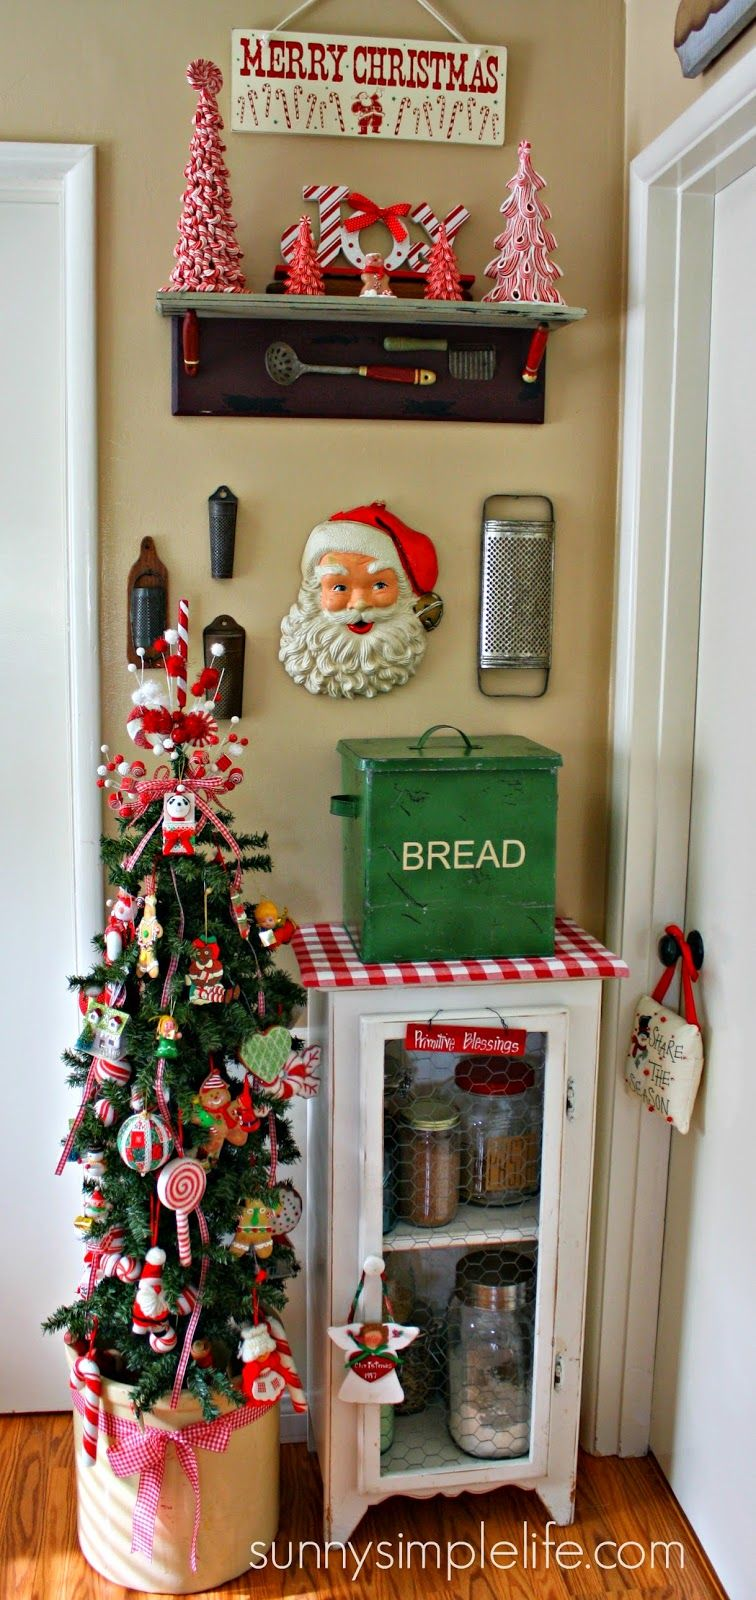 Christmas Kitchen Decoration: Vintage Kitchen Christmas Tree, Neat How A Small Corner